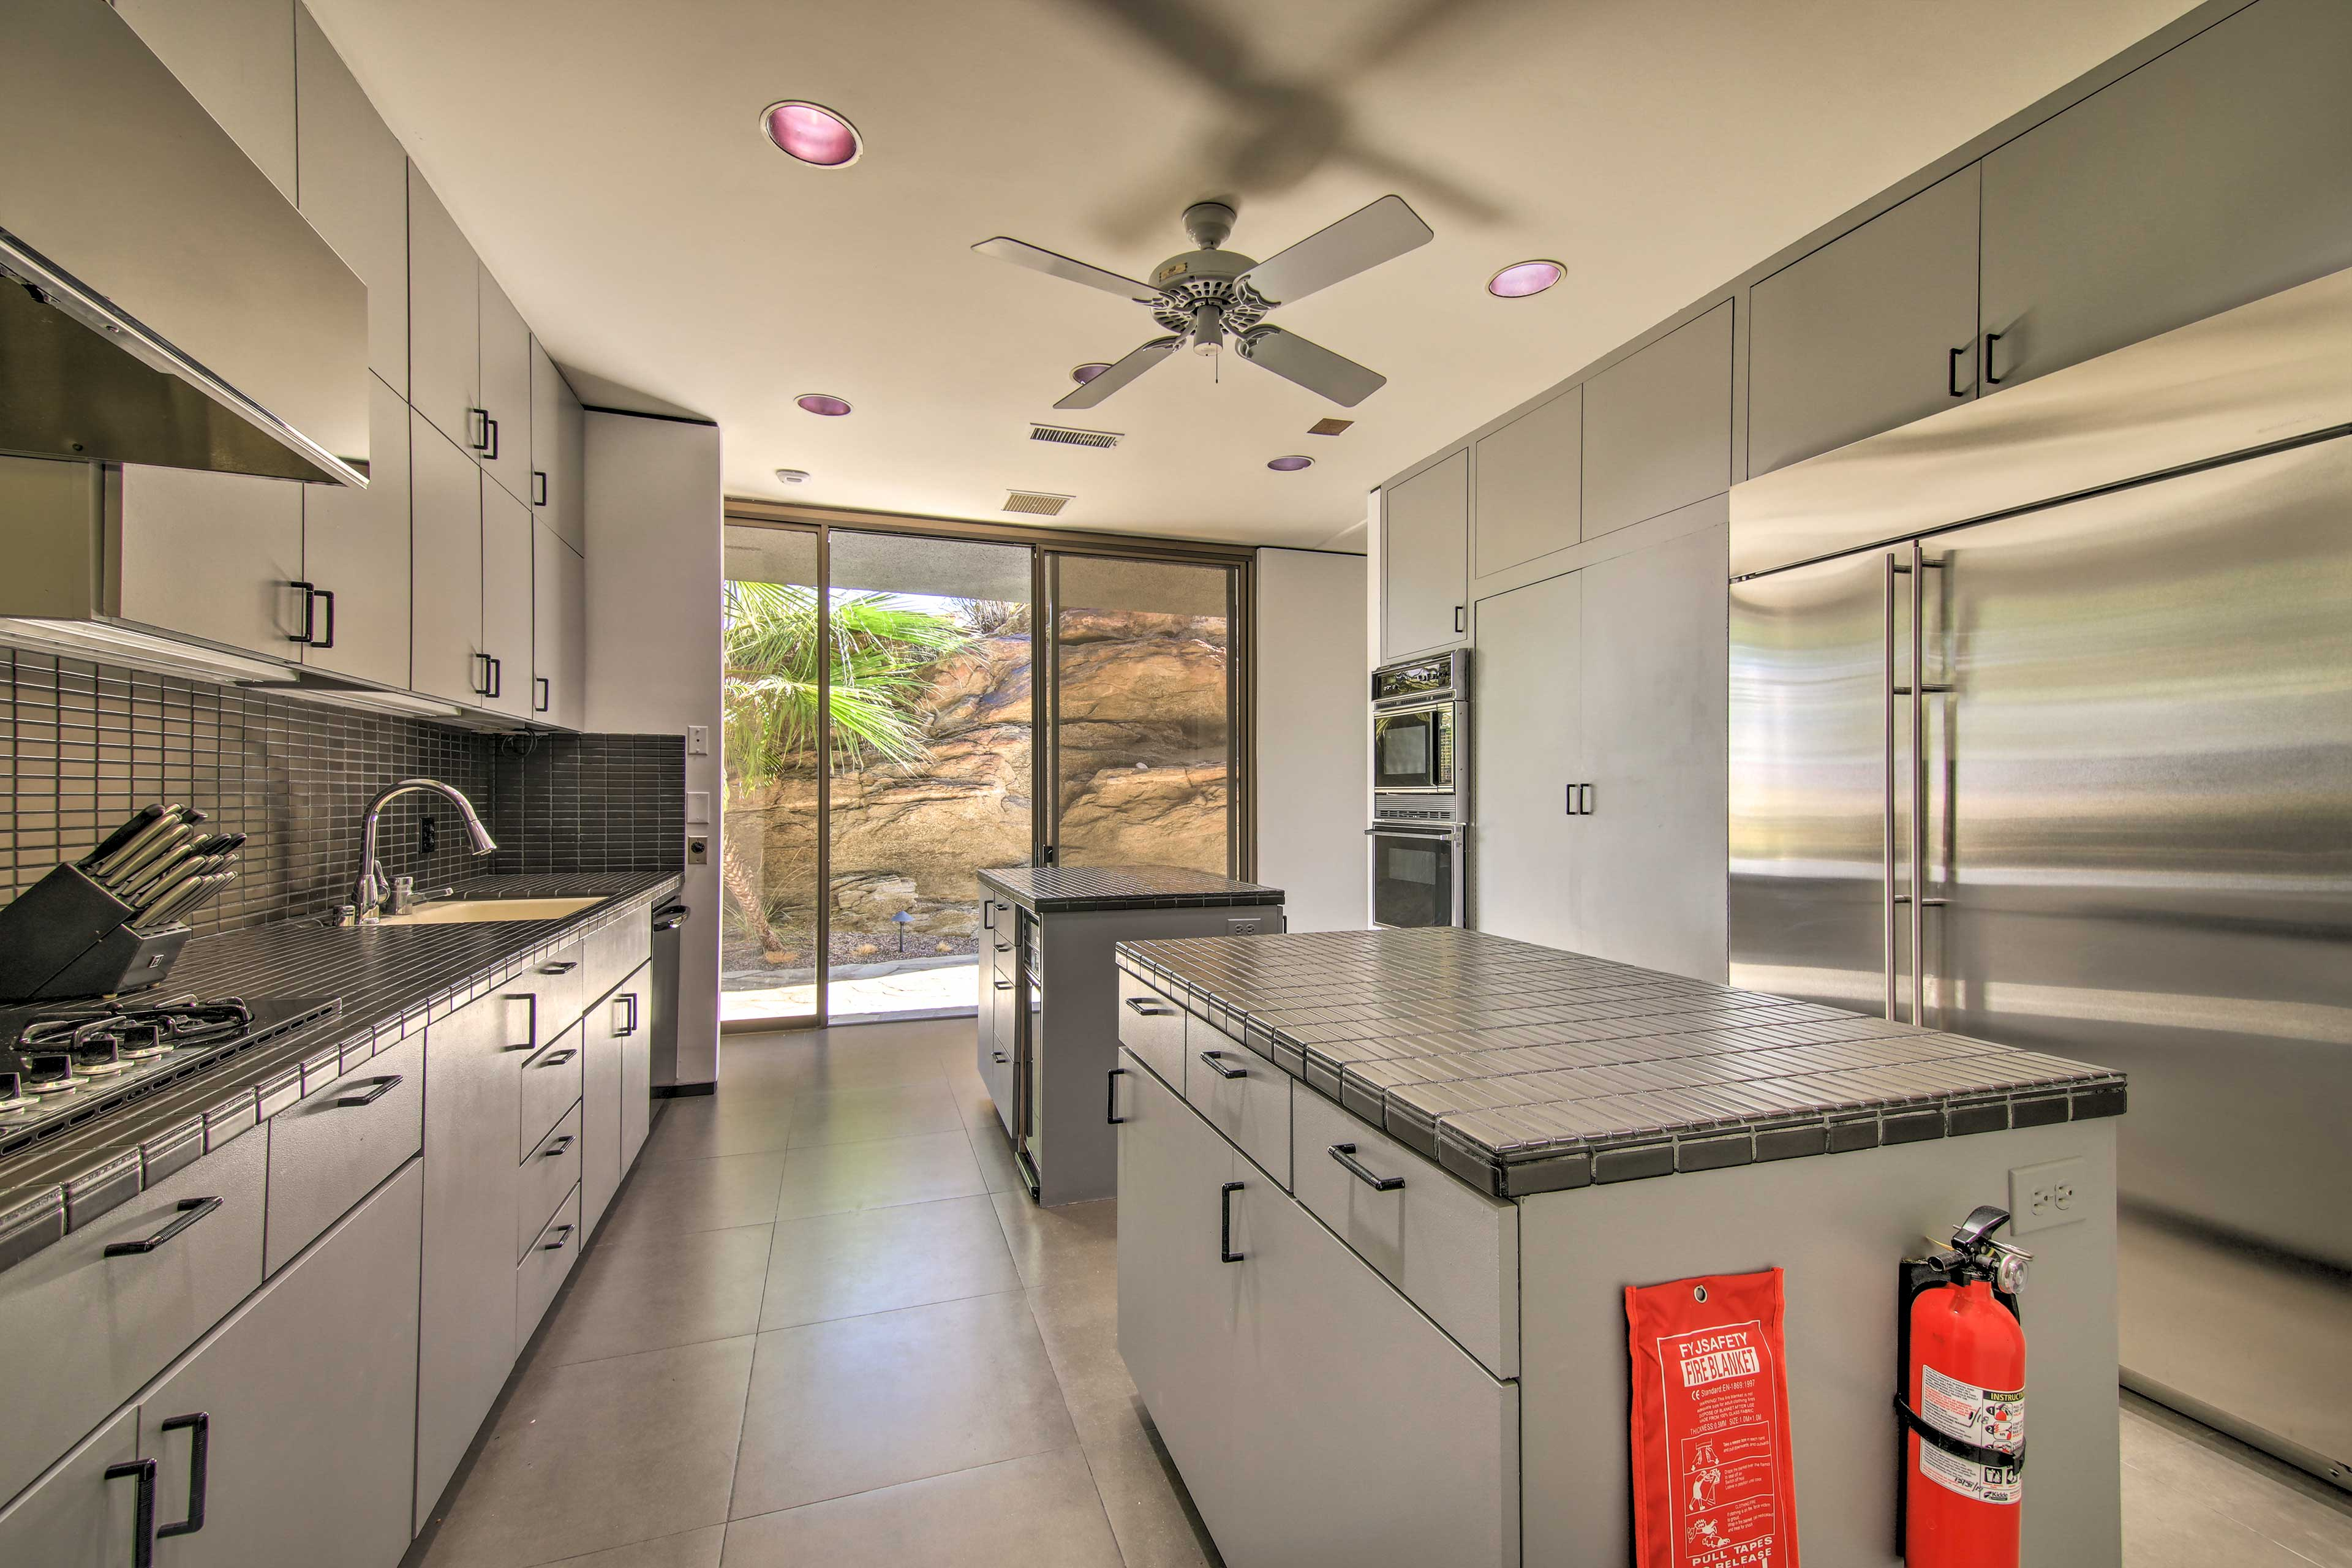 Fully Equipped Kitchen | Full Knife Set | Trash Bags/Paper Towels Provided